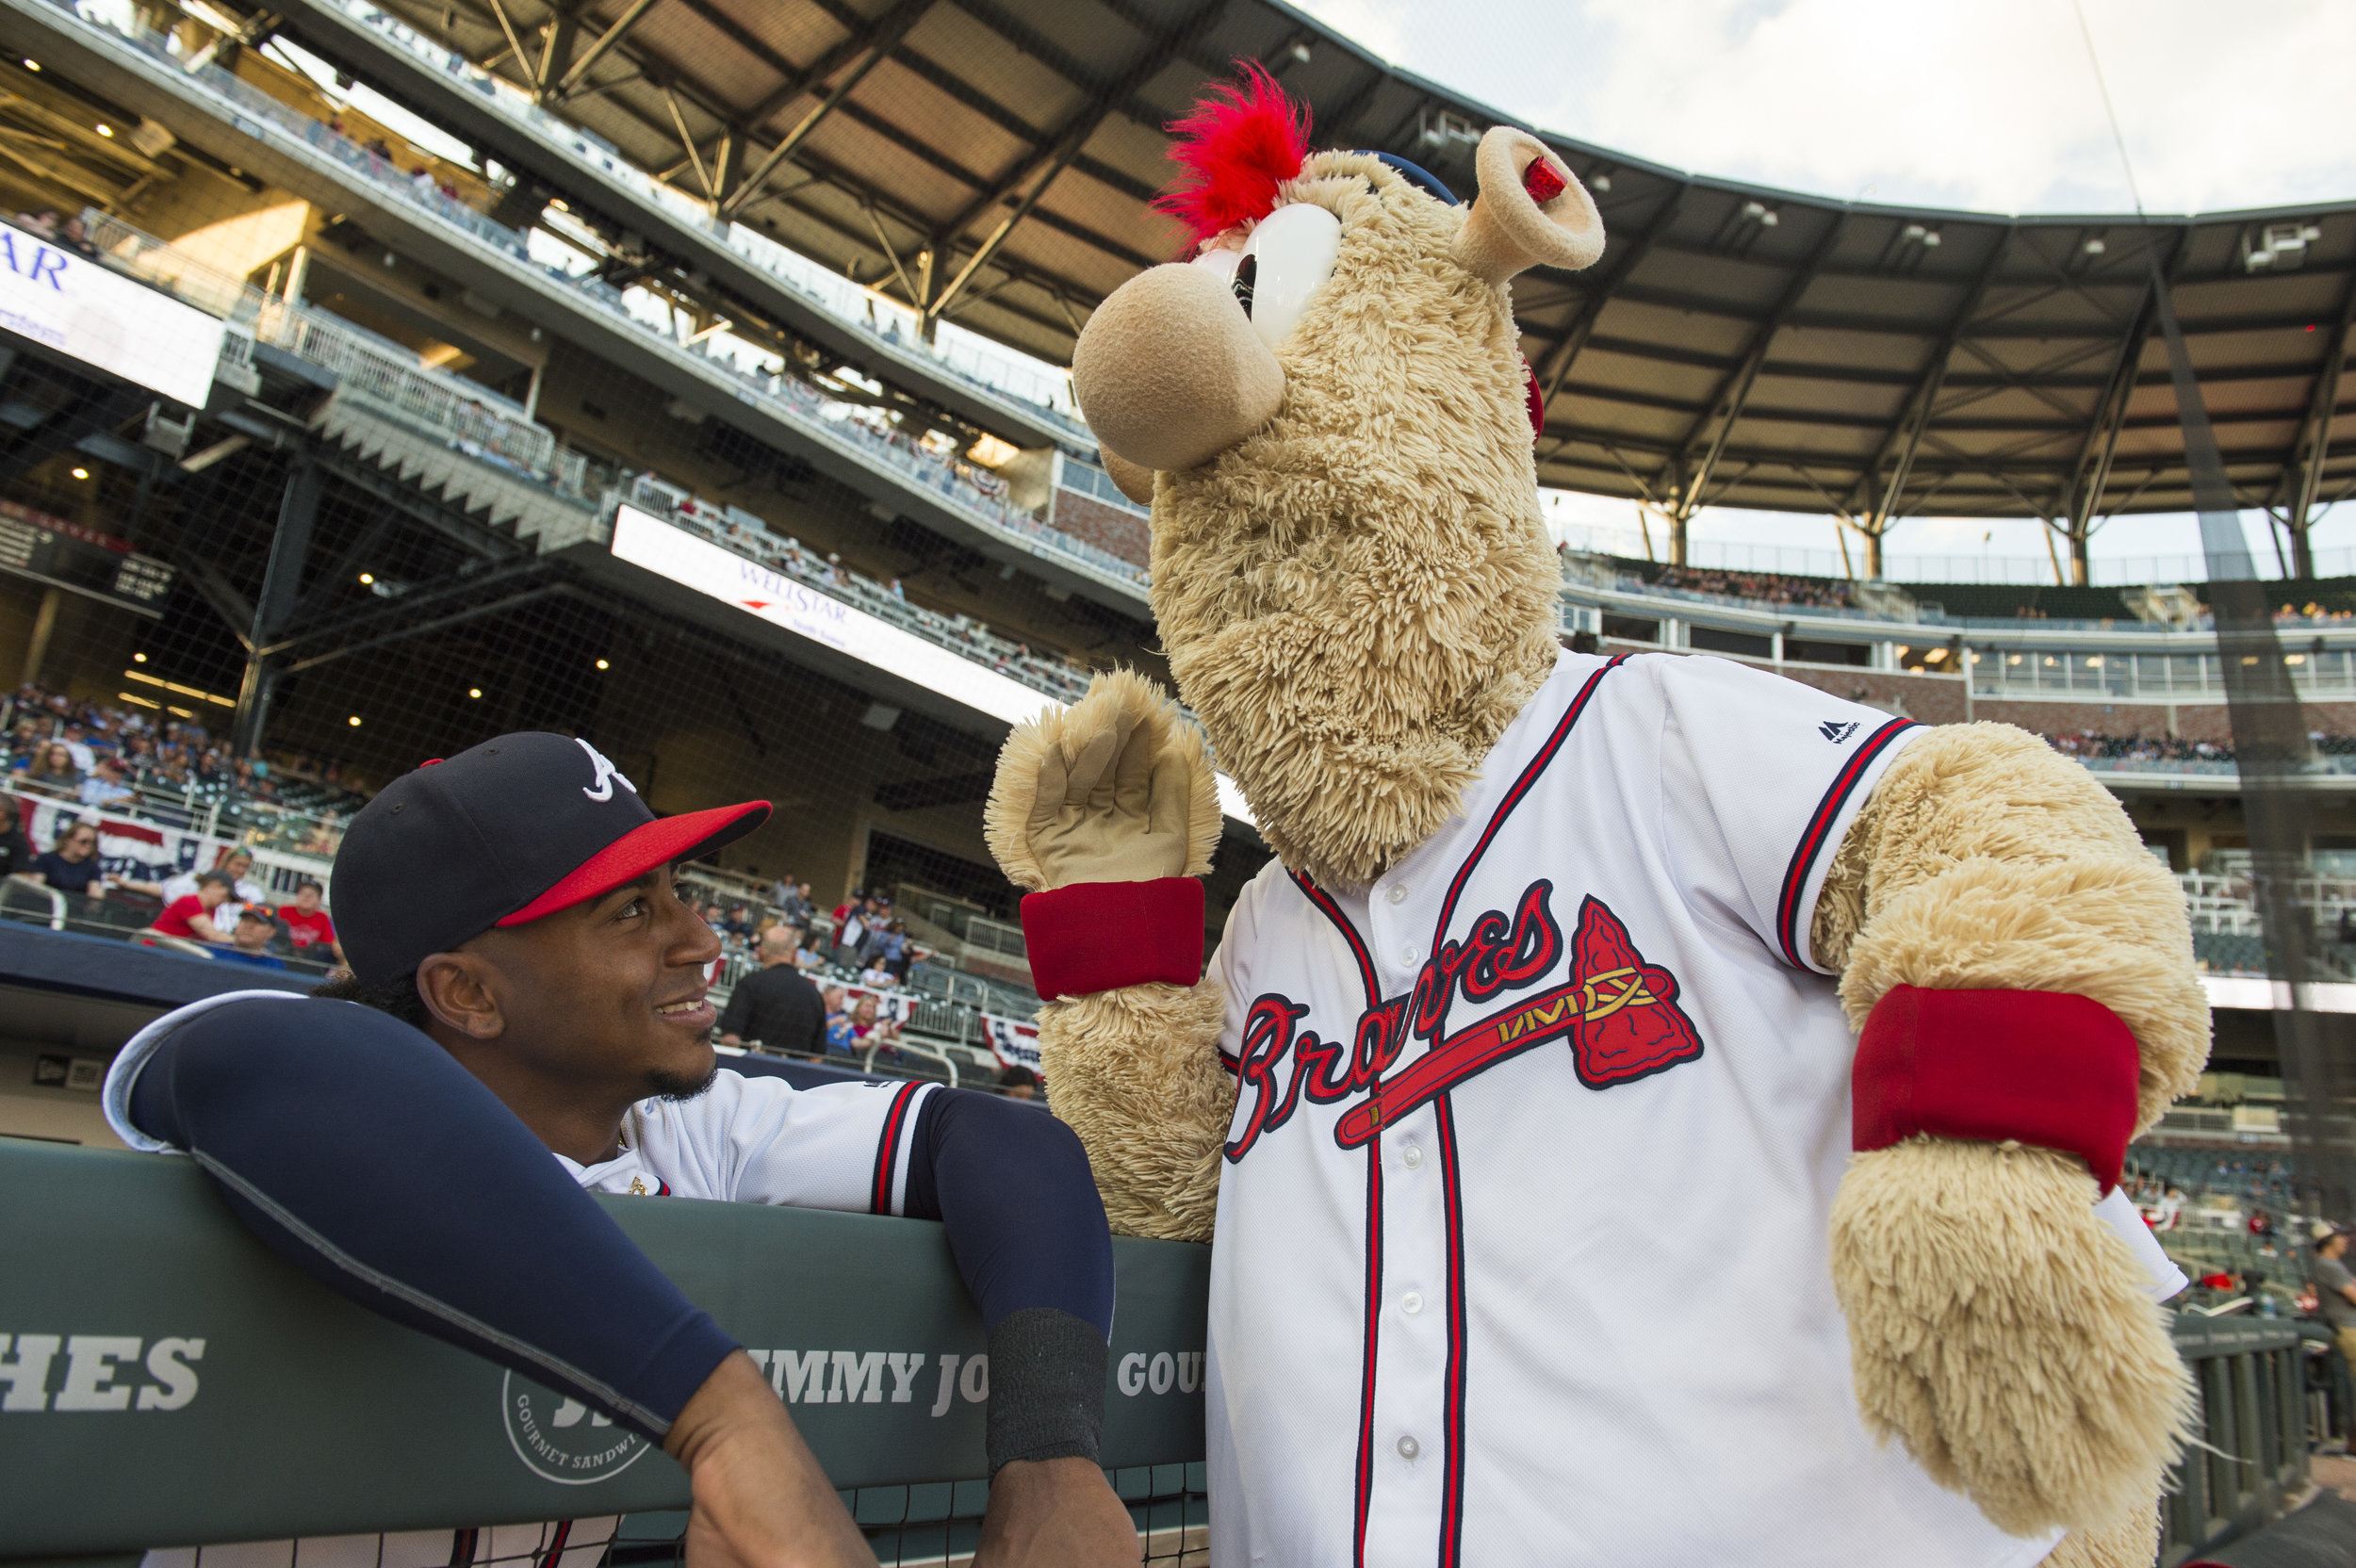 ATLANTA, GA - APRIL 03: Blooper and Ozzie Albies #1 of the Atlanta Braves chat before the game against the Washington Nationals on at SunTrust Park on April 3, 2018, in Atlanta, Georgia. The Braves won 13-6.